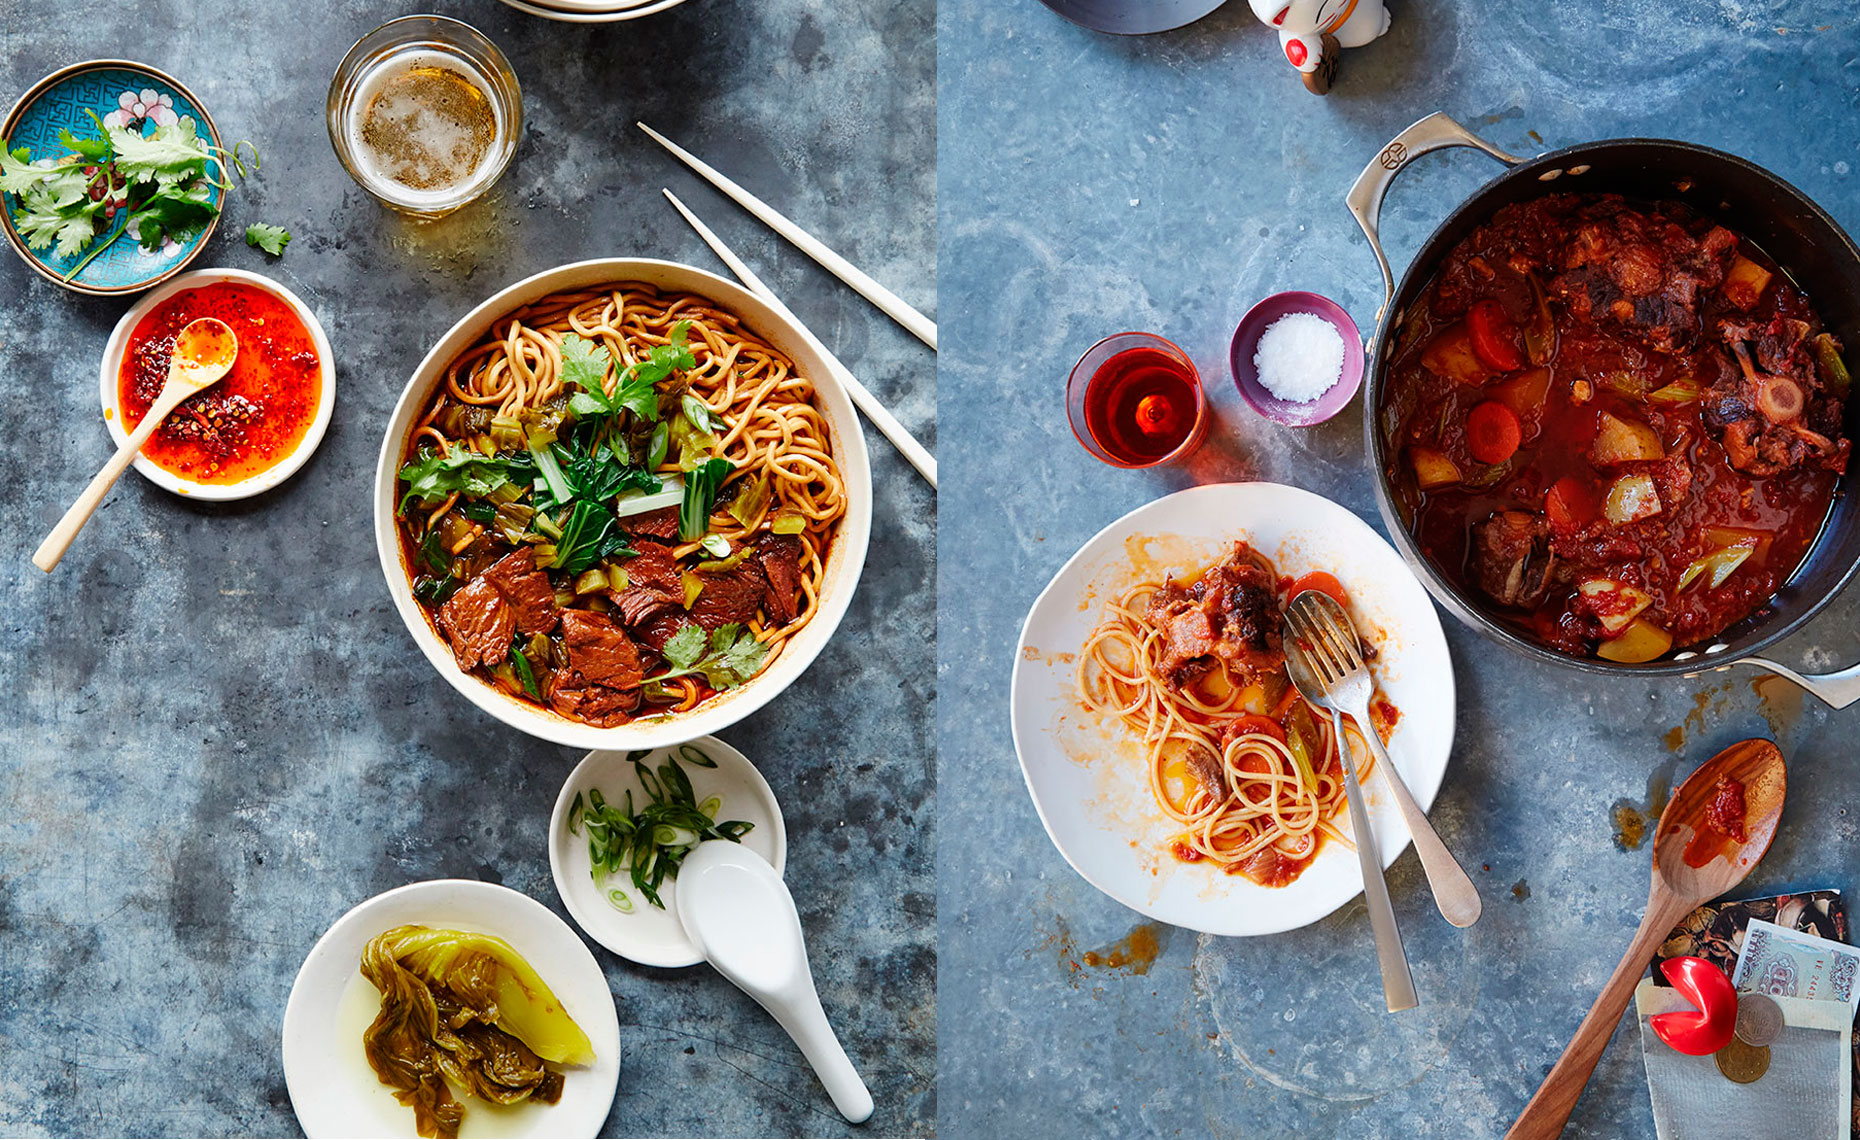 beef-noodle-soup-and-oxtail-stew.jpg